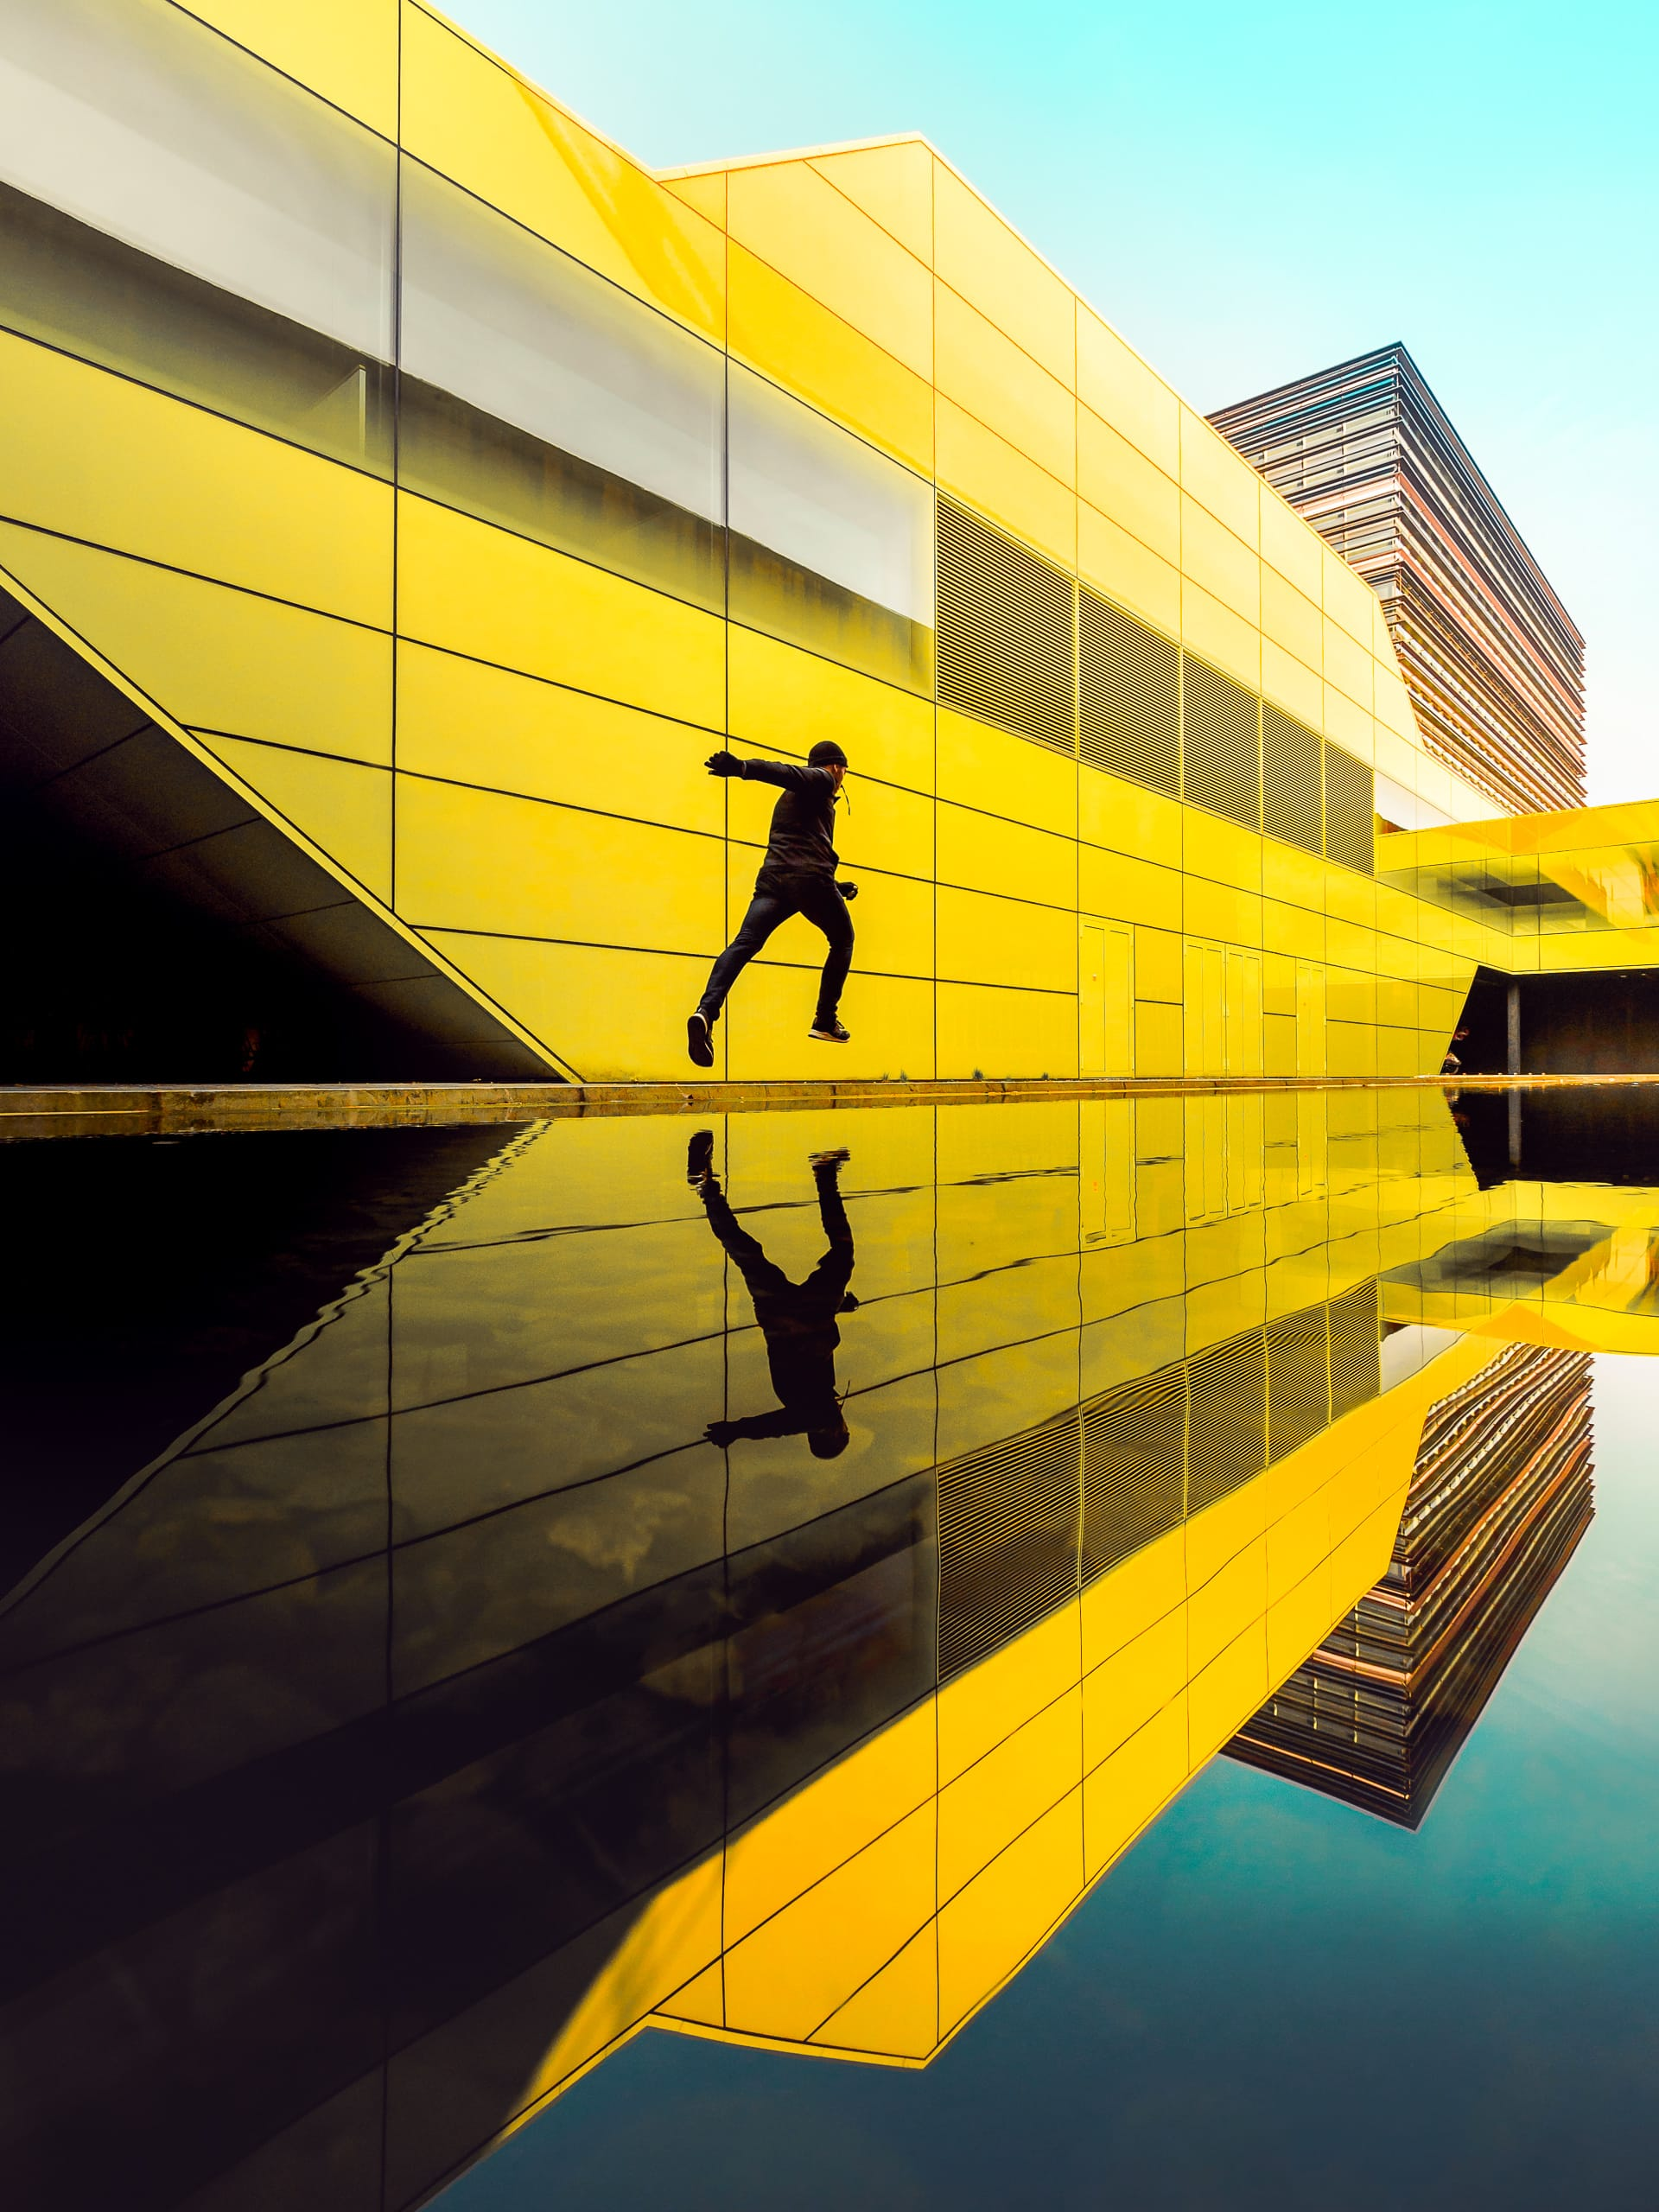 Man running in black clothes through colorfull modern architecture urban environment